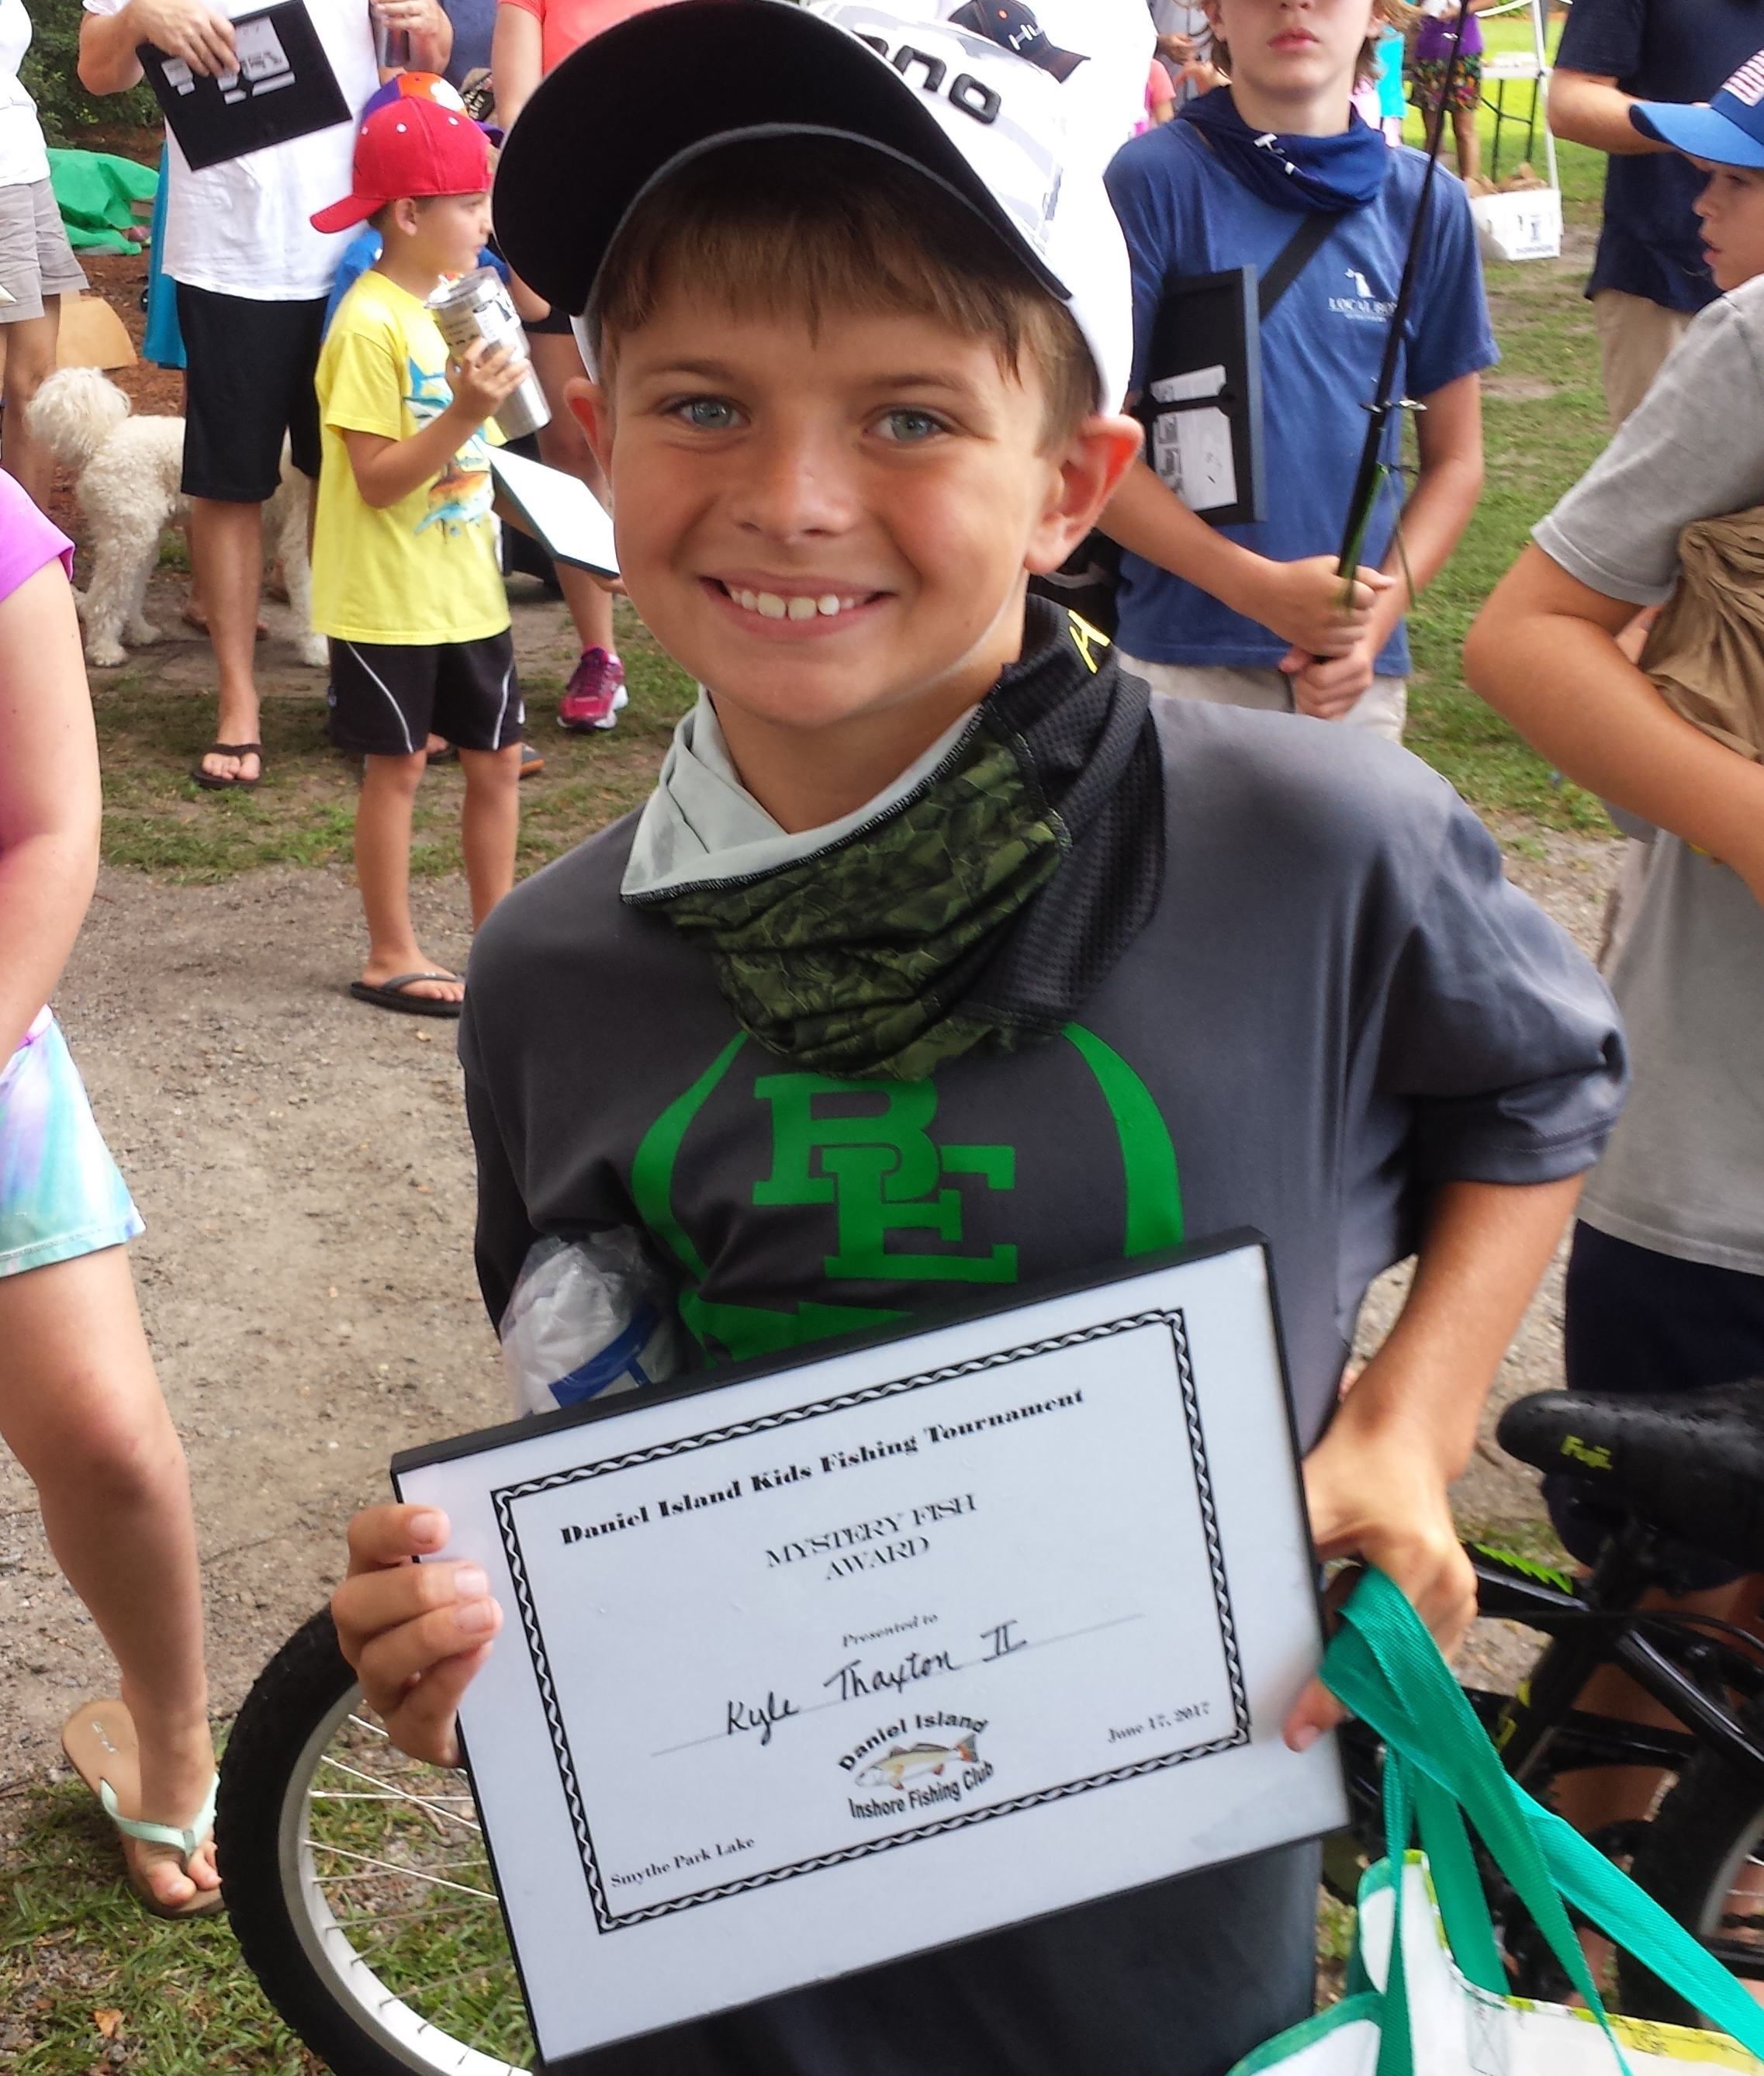 Kyle Thaxton II won the Mystery Fish Award with a 20 inch eel.